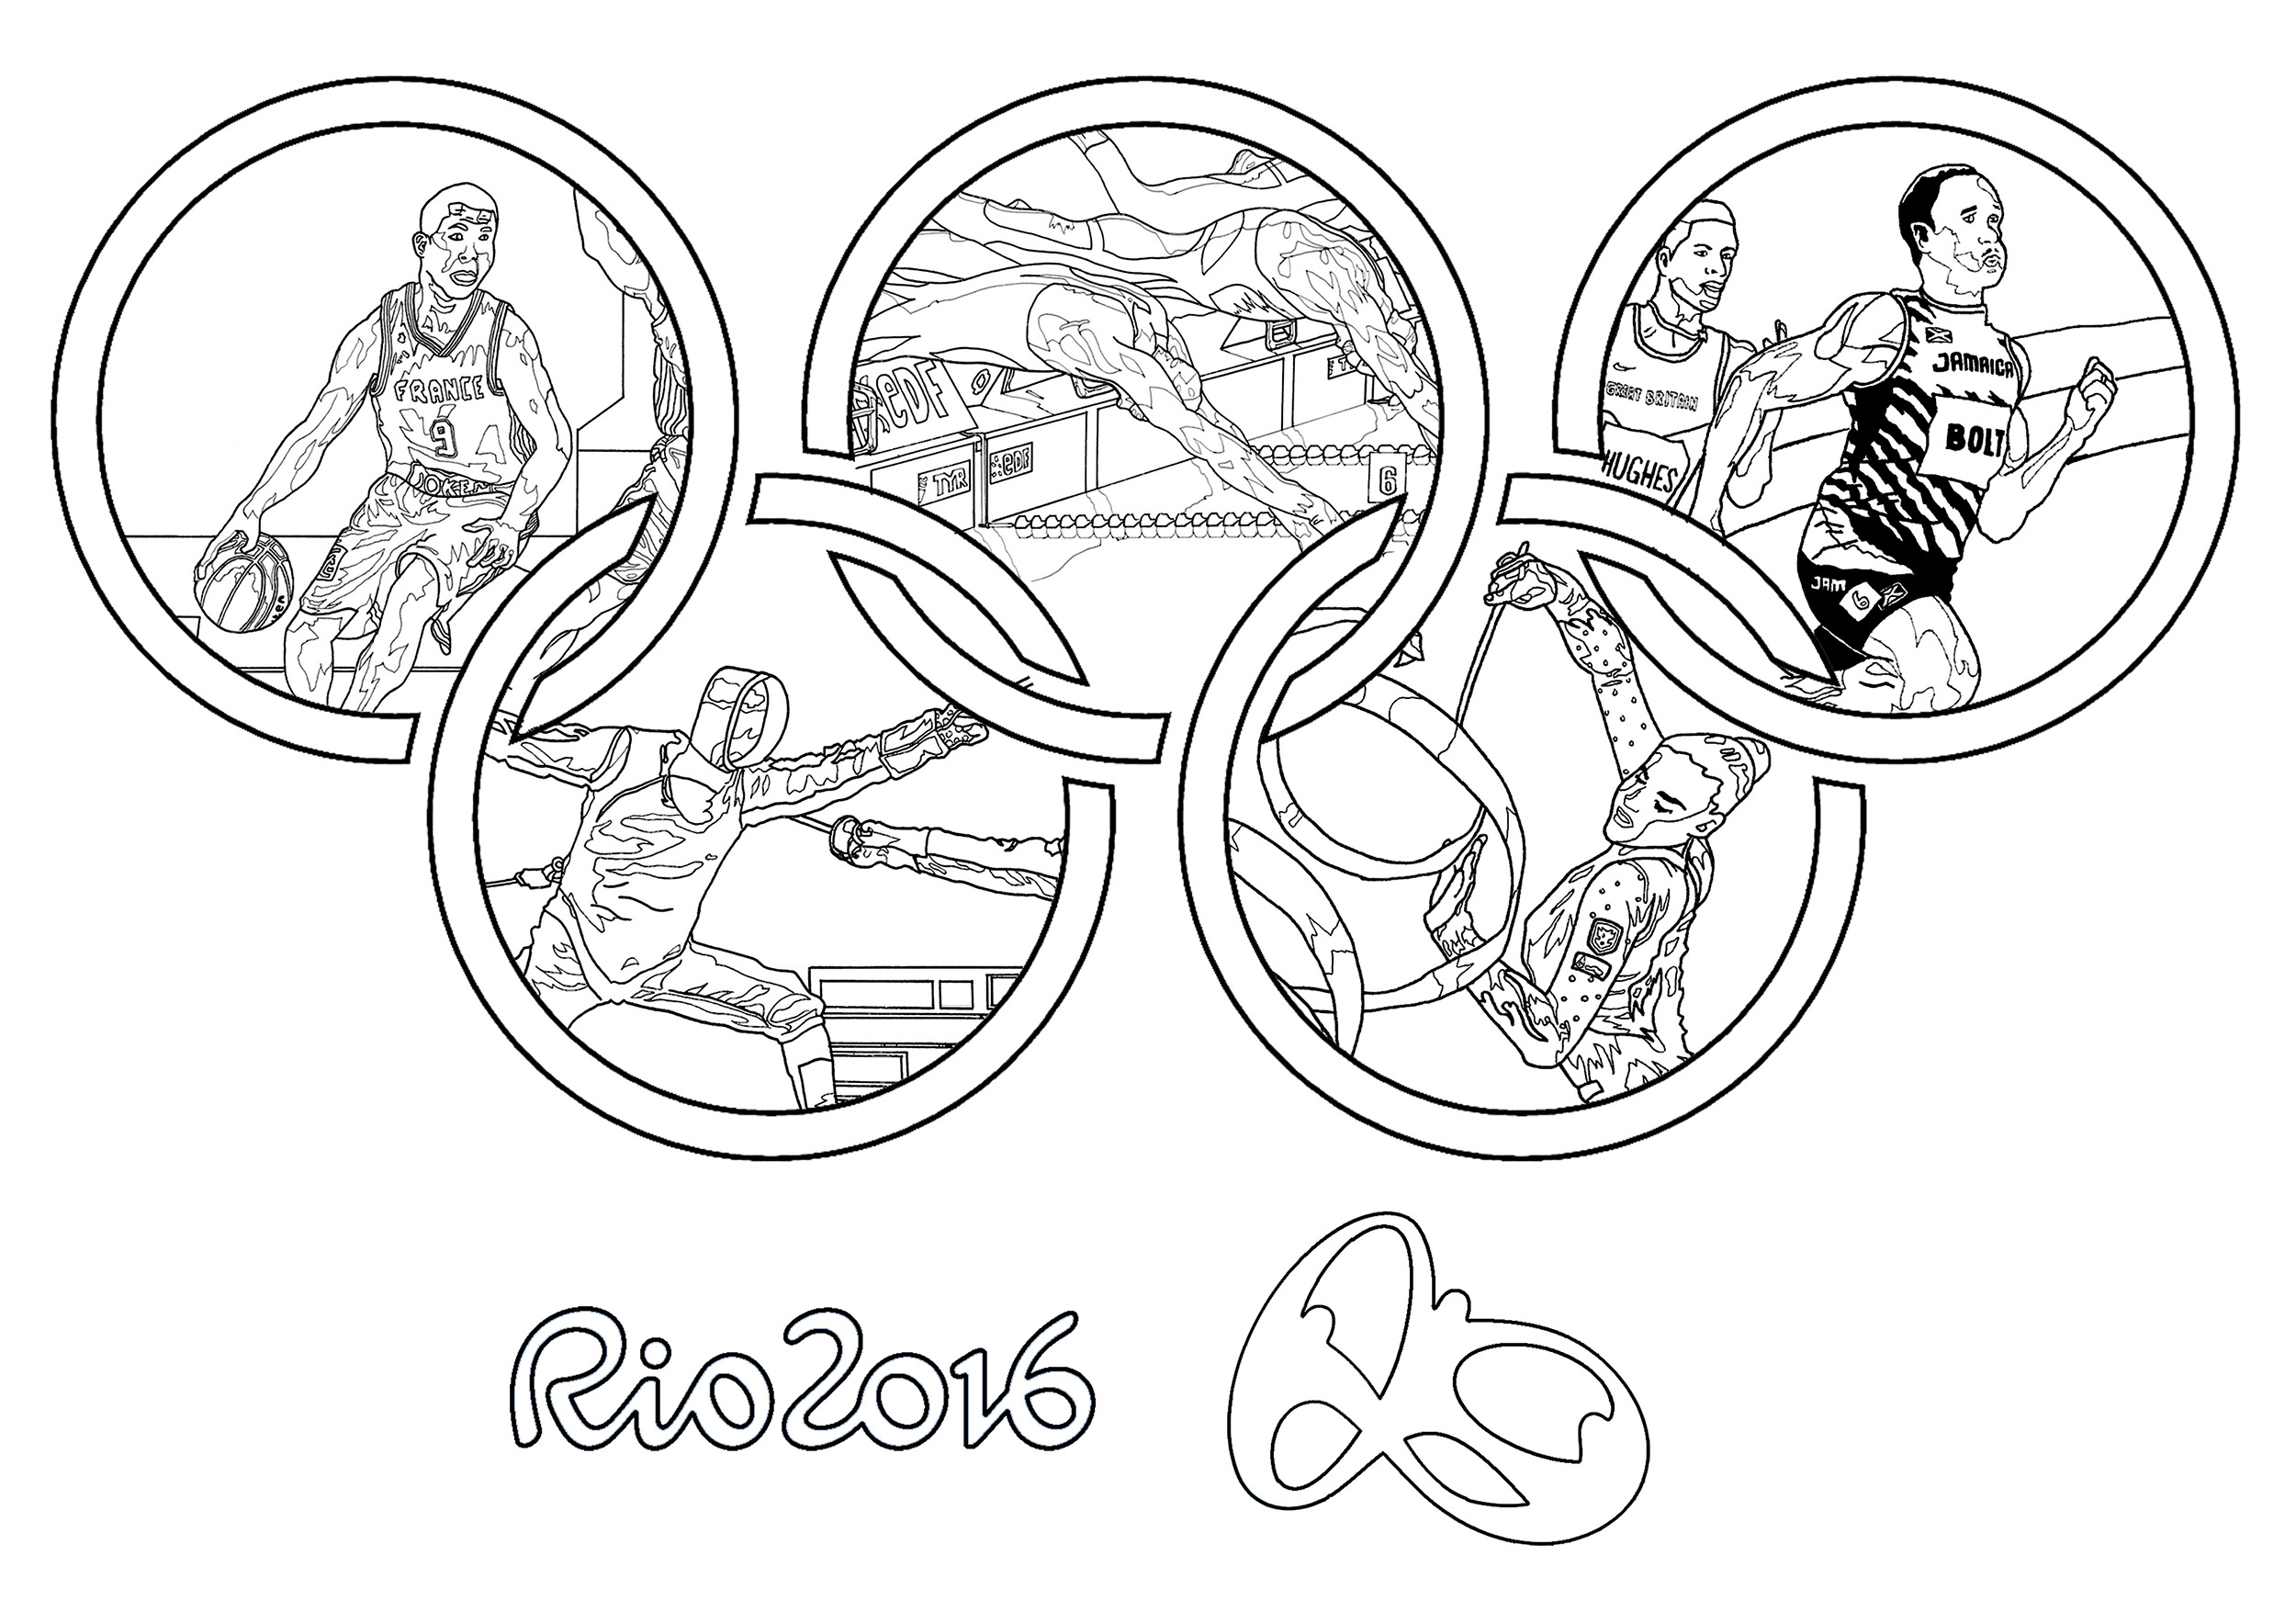 Rio 2016 olympic games - Olympic (& sport) Adult Coloring Pages